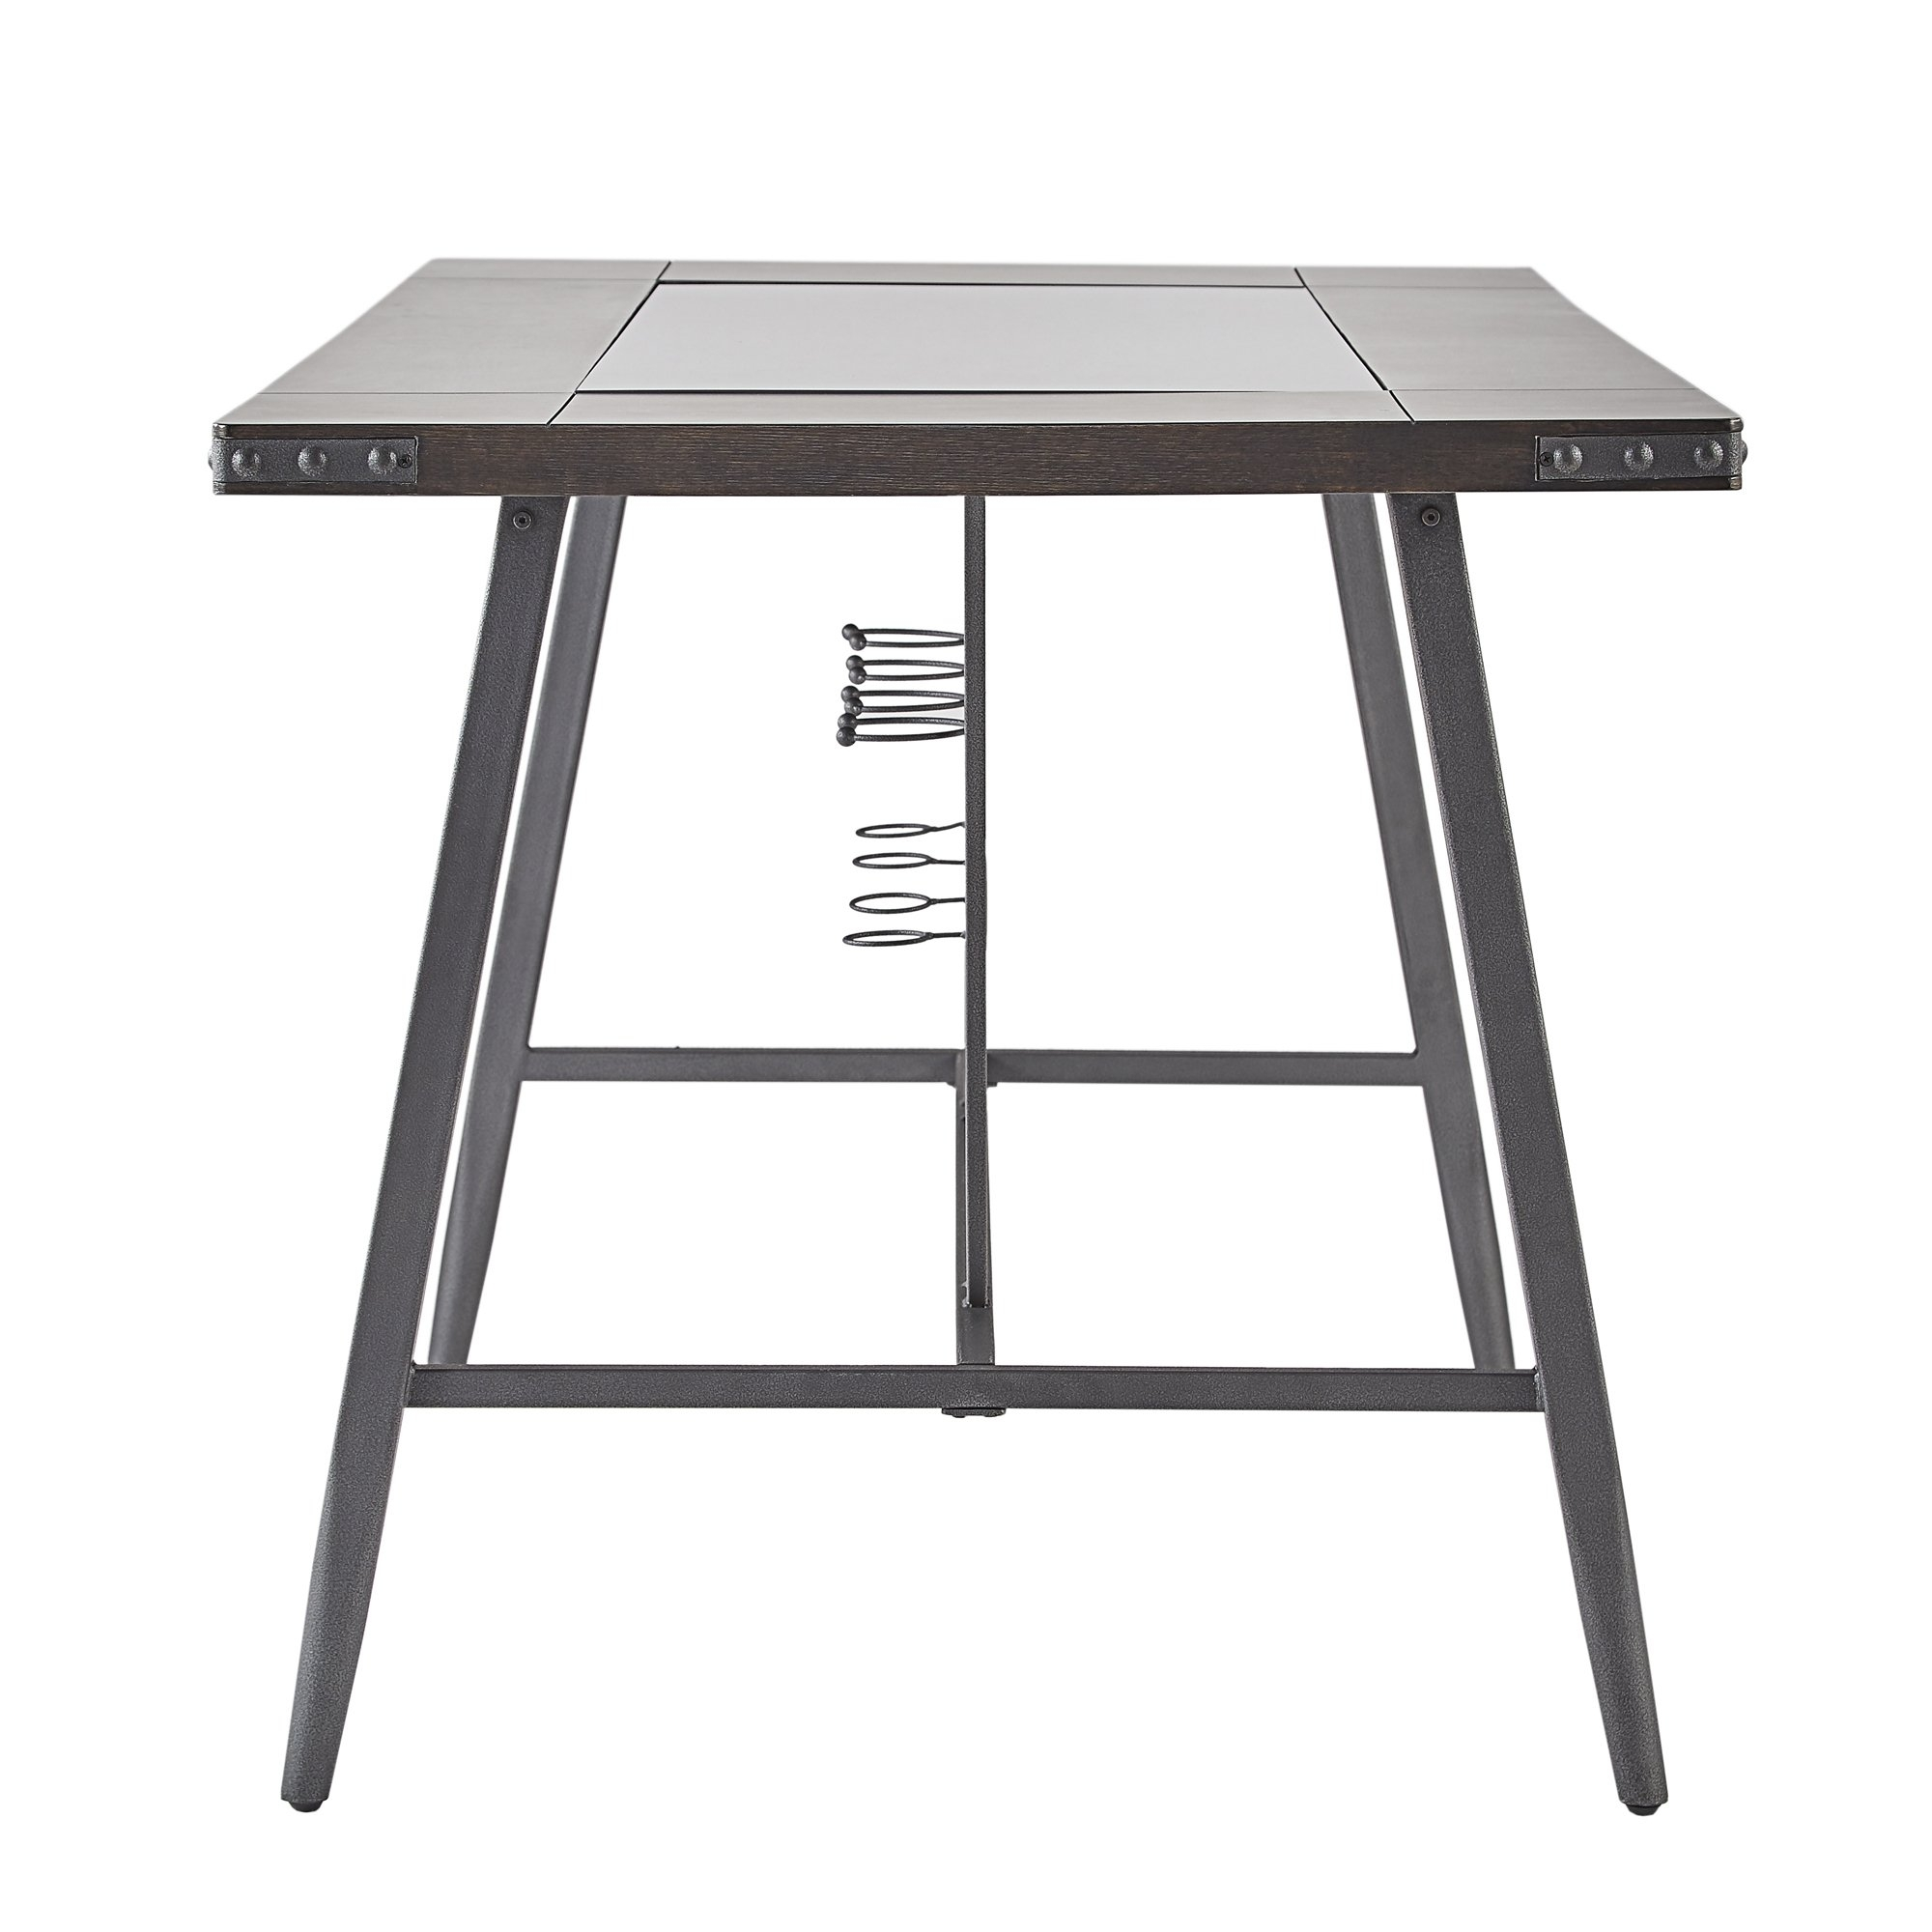 Shop Harley Counter Height Dining Table With Wine Rackinspire Q Pertaining To Current Ina Matte Black 60 Inch Counter Tables With Frosted Glass (View 9 of 20)